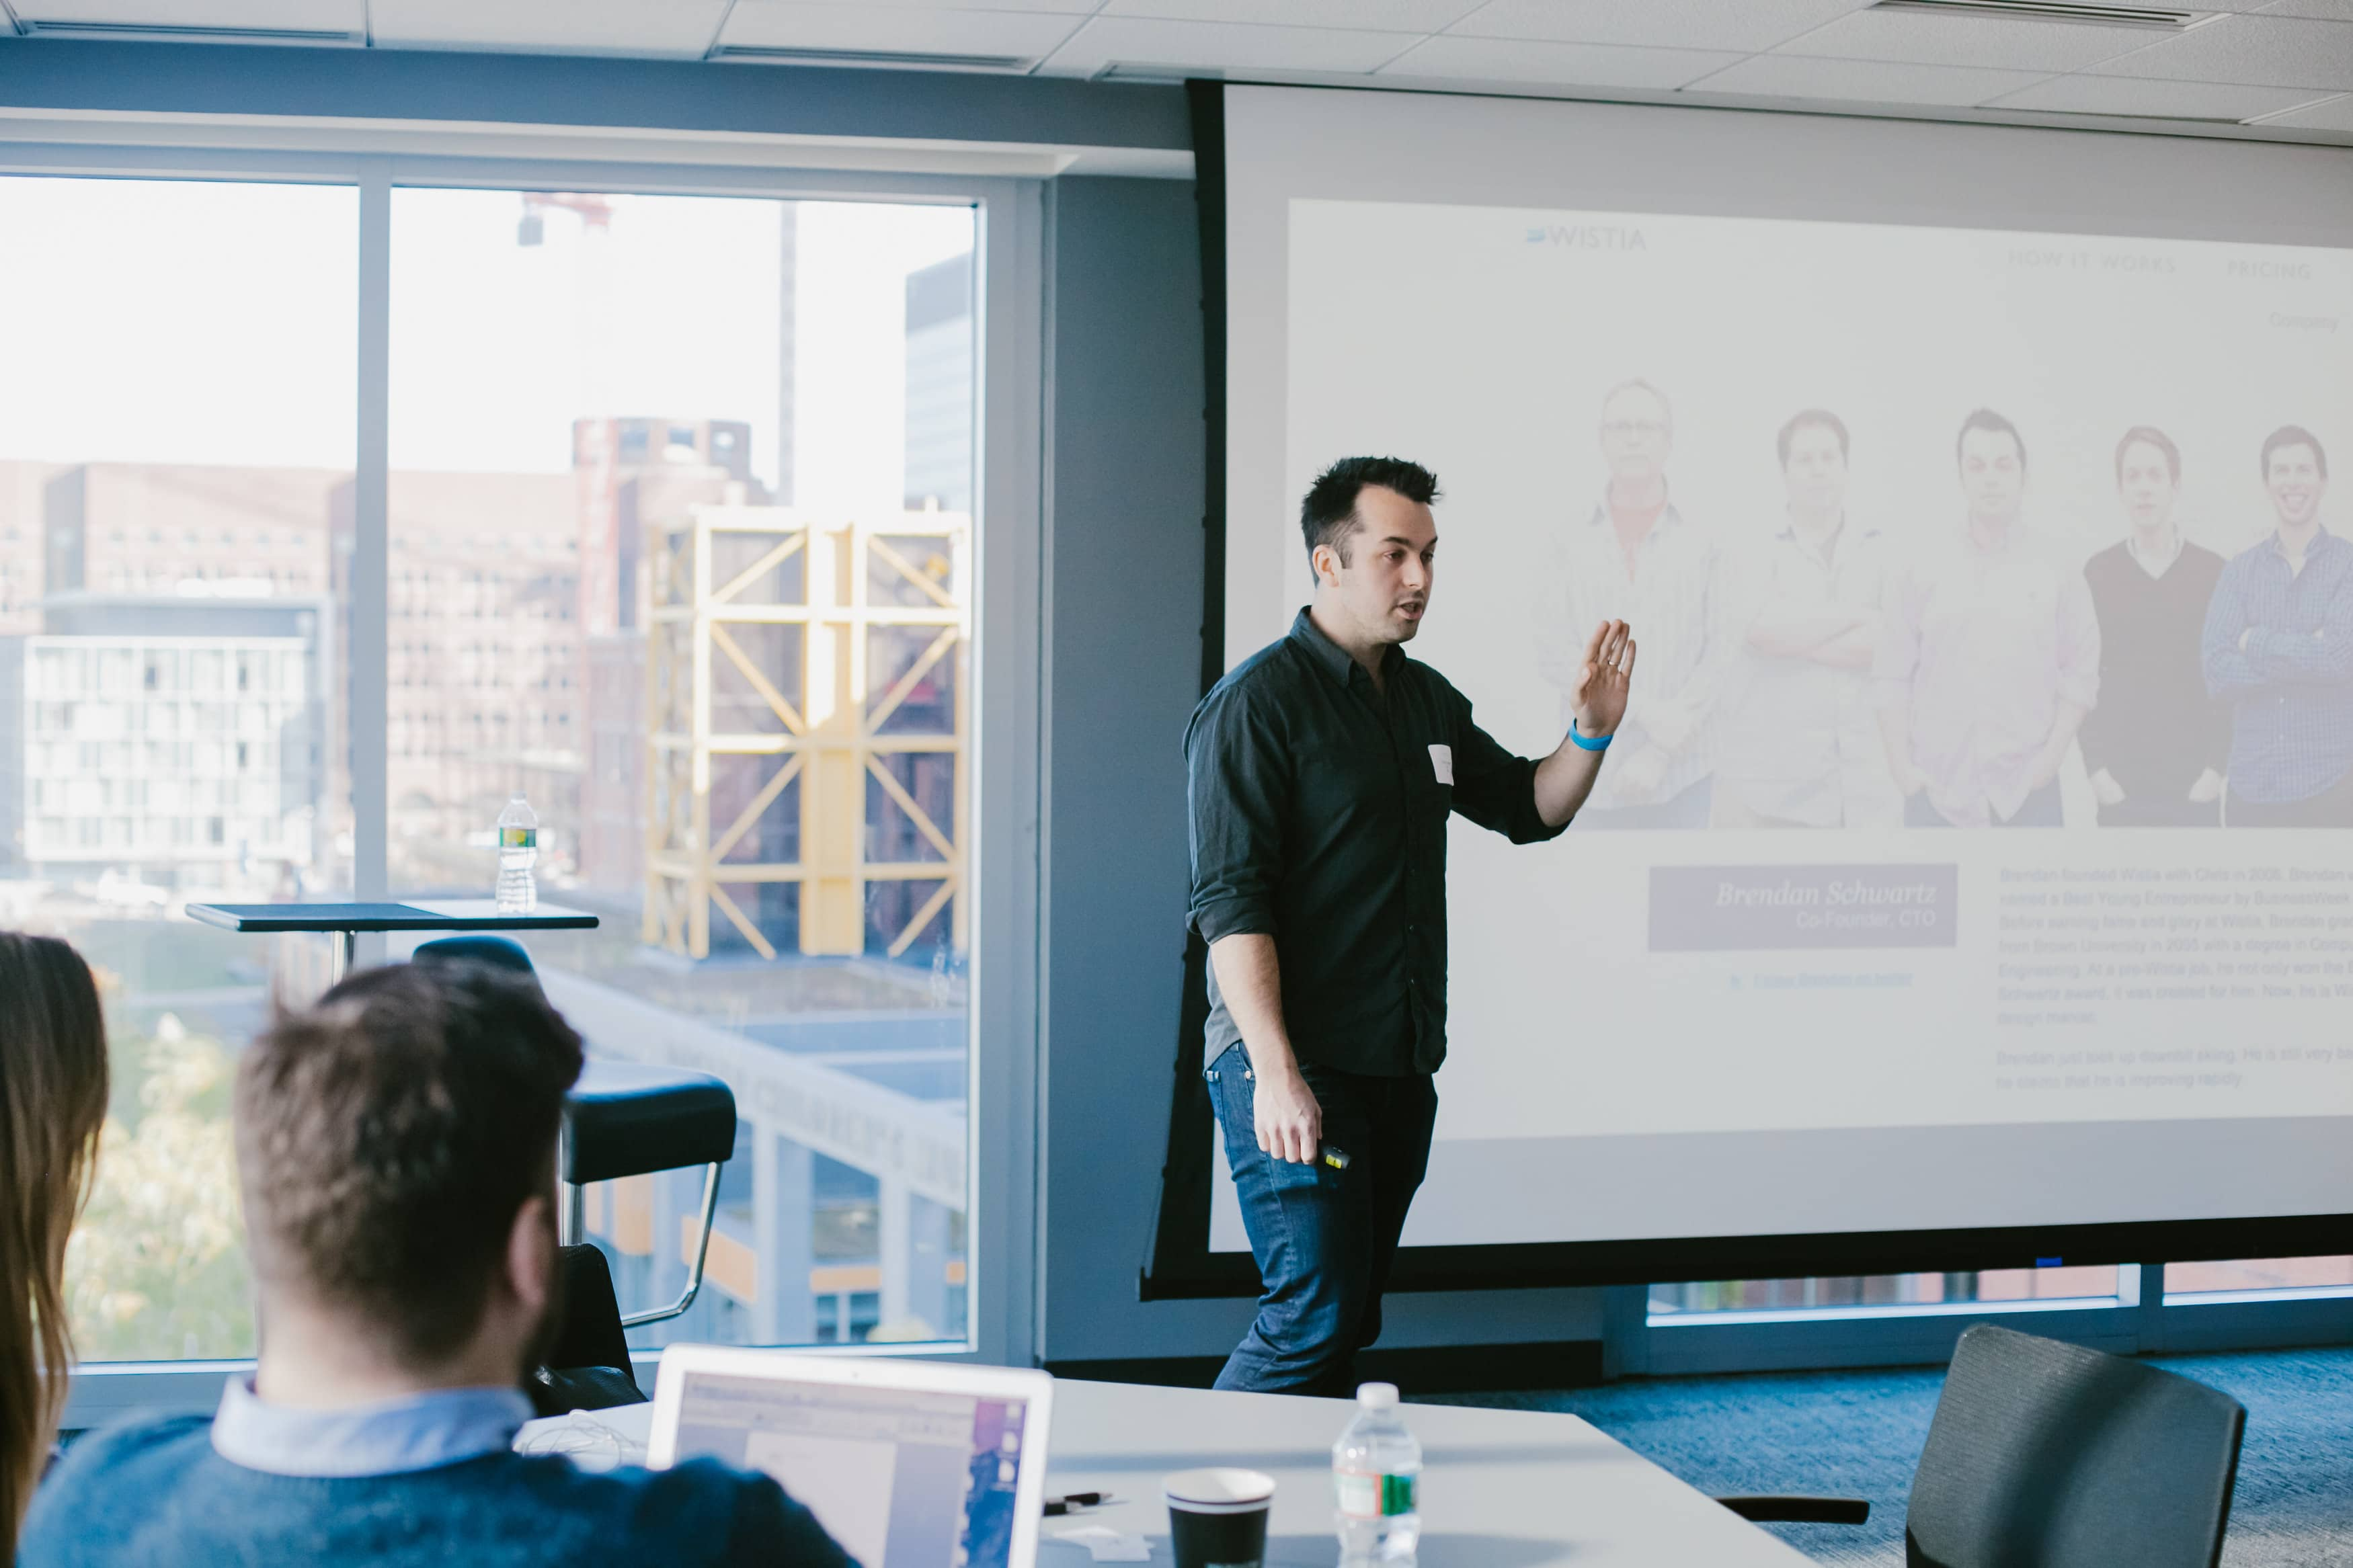 Thinking Outside the Box: How Wistia Uses Creative Content